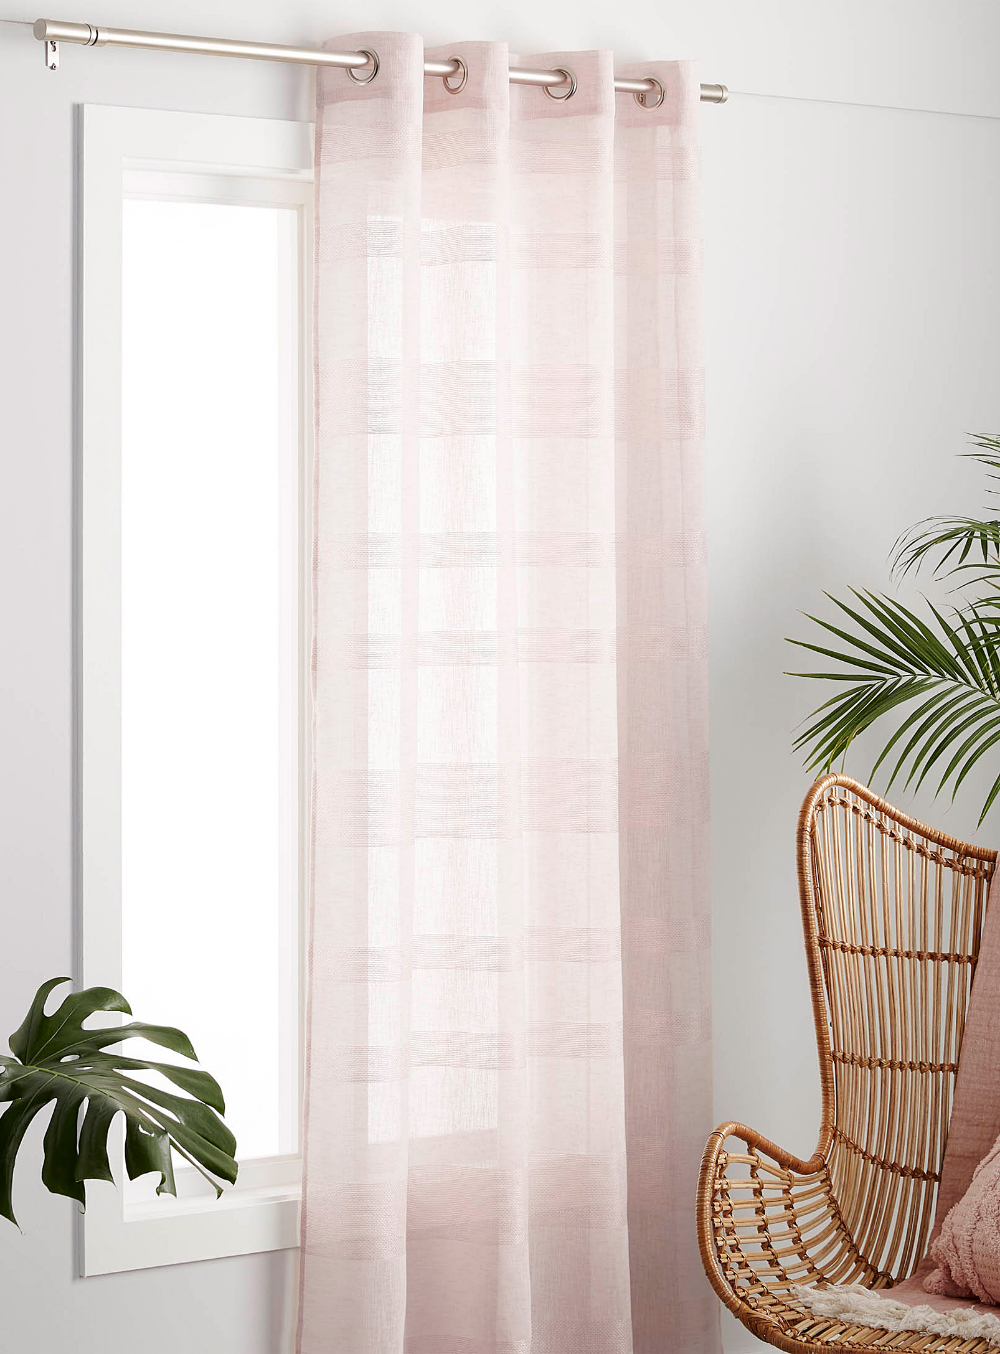 Pastel Horizon Sheer Curtain 135 X 220 Cm In 2020 Curtains Living Room Summer Curtains Curtains #summer #curtains #for #living #room